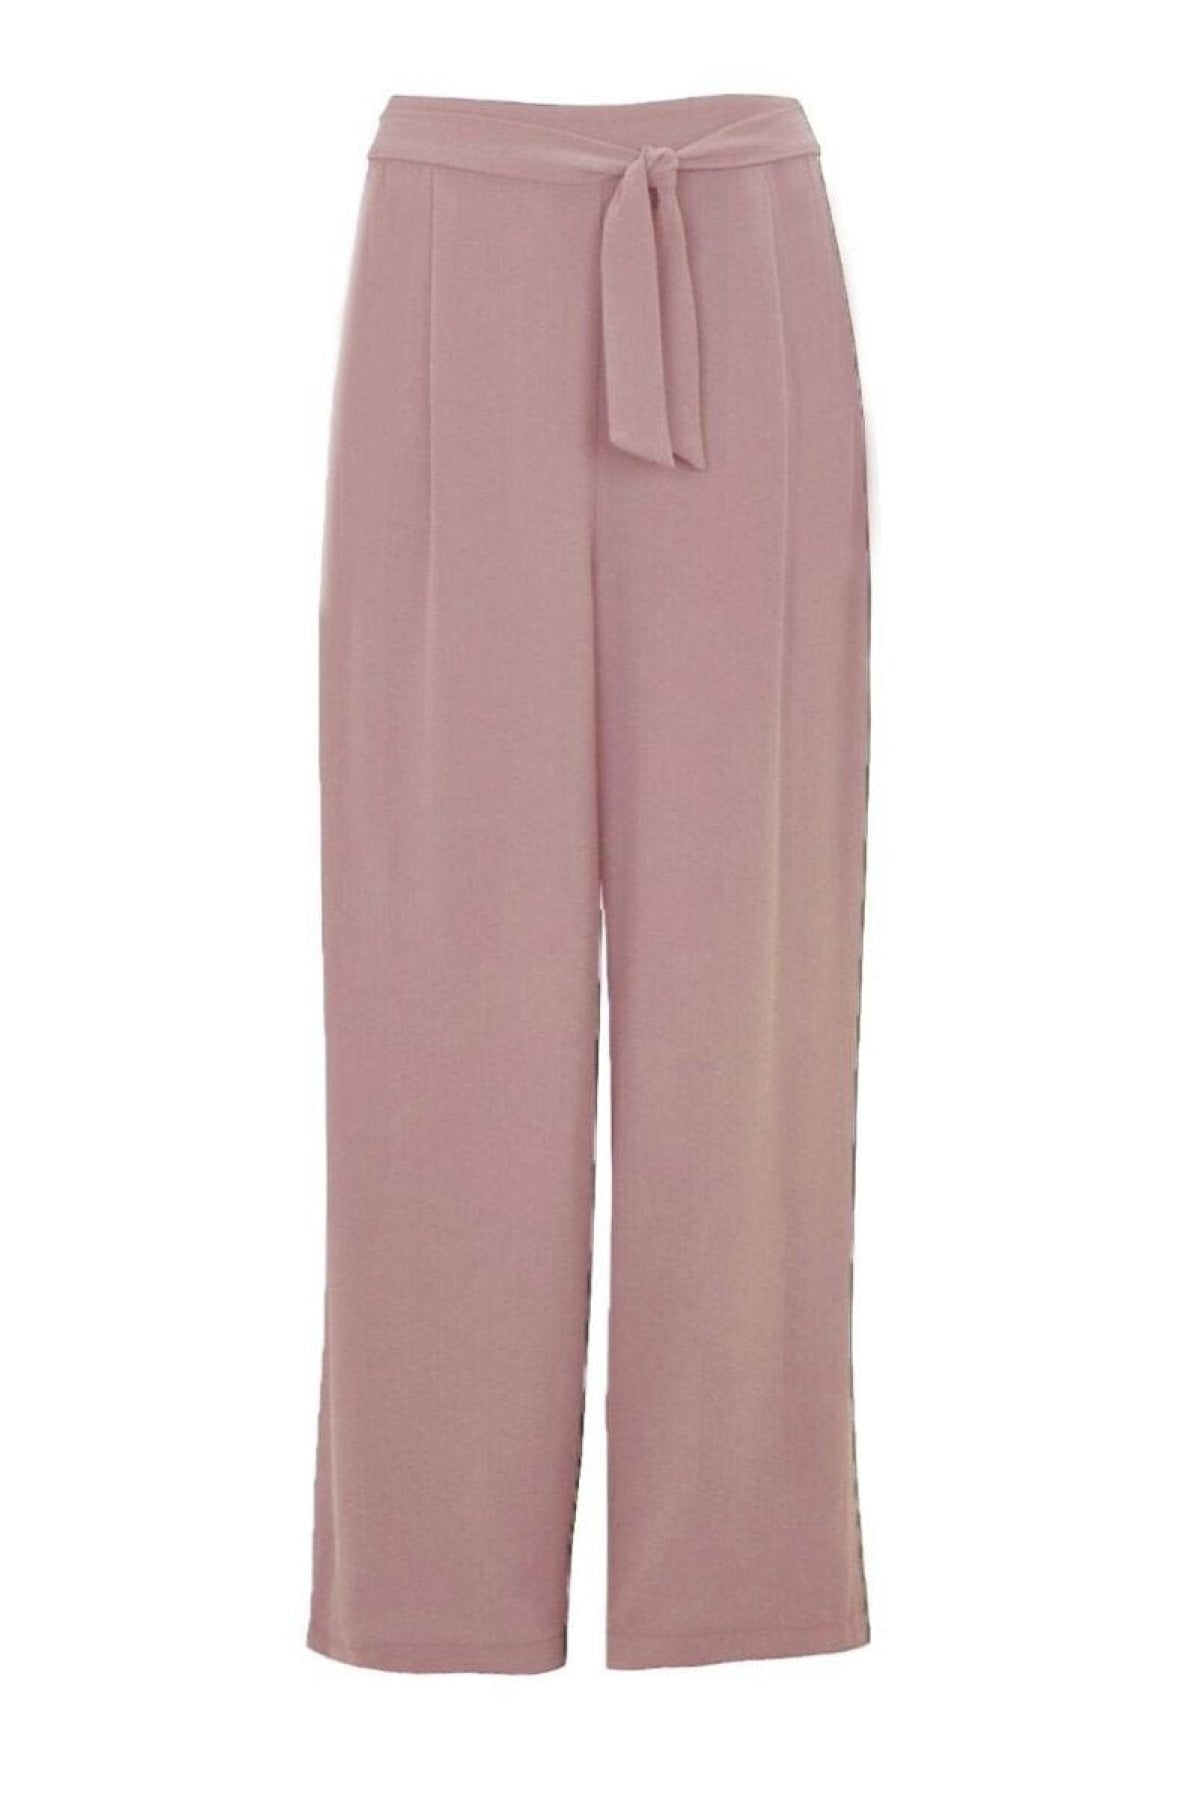 Evans Ex Evans Wide Leg Tie Front Trousers | Secret Label